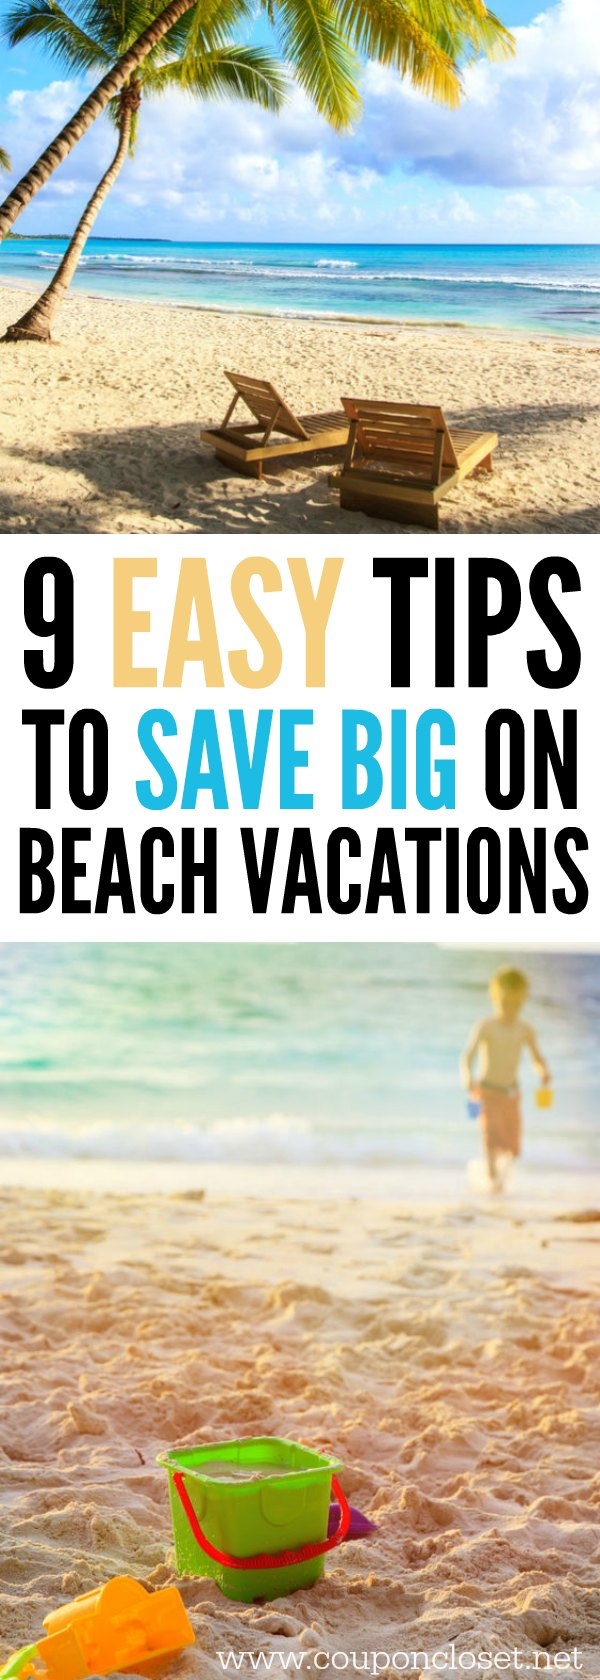 Here are some easy ways to save money on beach vacations. Beach vacations don't have to be expensive with these easy money saving tips.